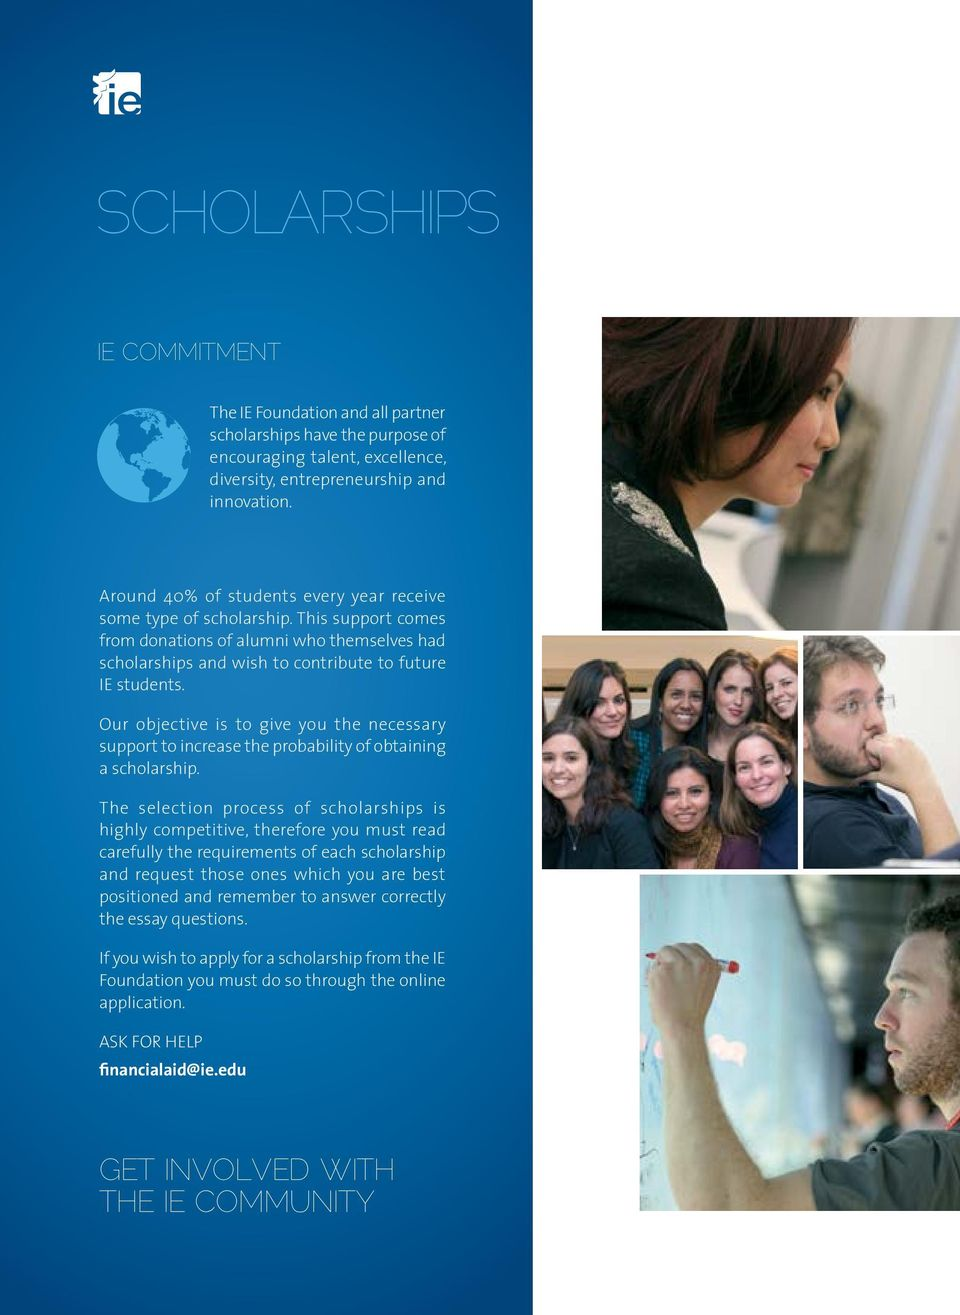 Our objective is to give you the necessary support to increase the probability of obtaining a scholarship.